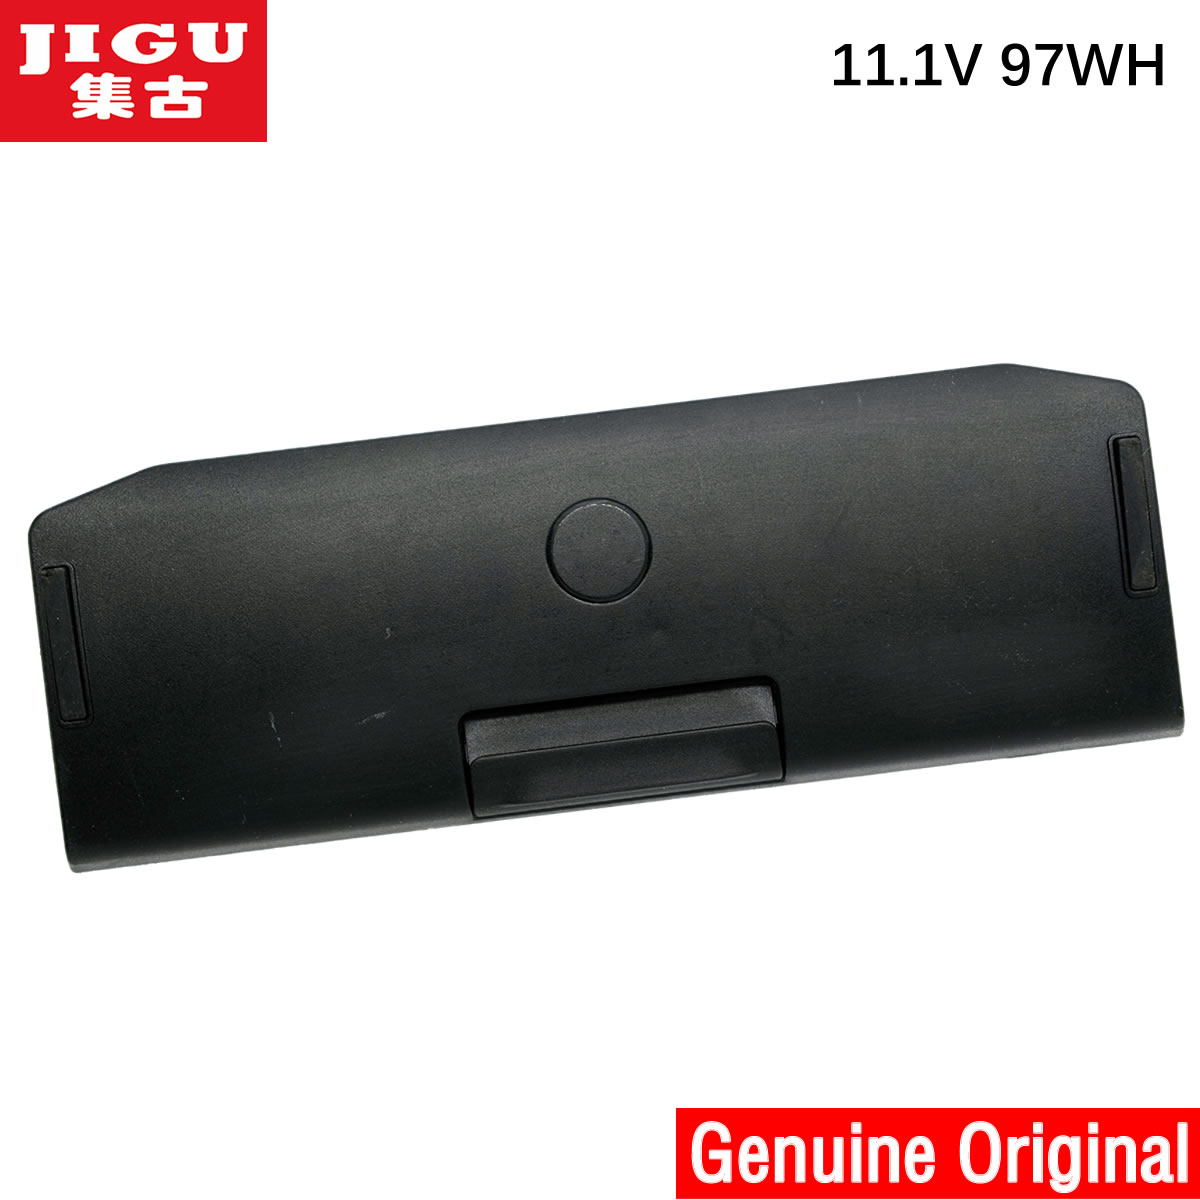 JIGU WT5WP Original laptop Battery For DELL For Latitude E6530 XT3 E6540 E5530 for Precision M2800 M4700 M6700